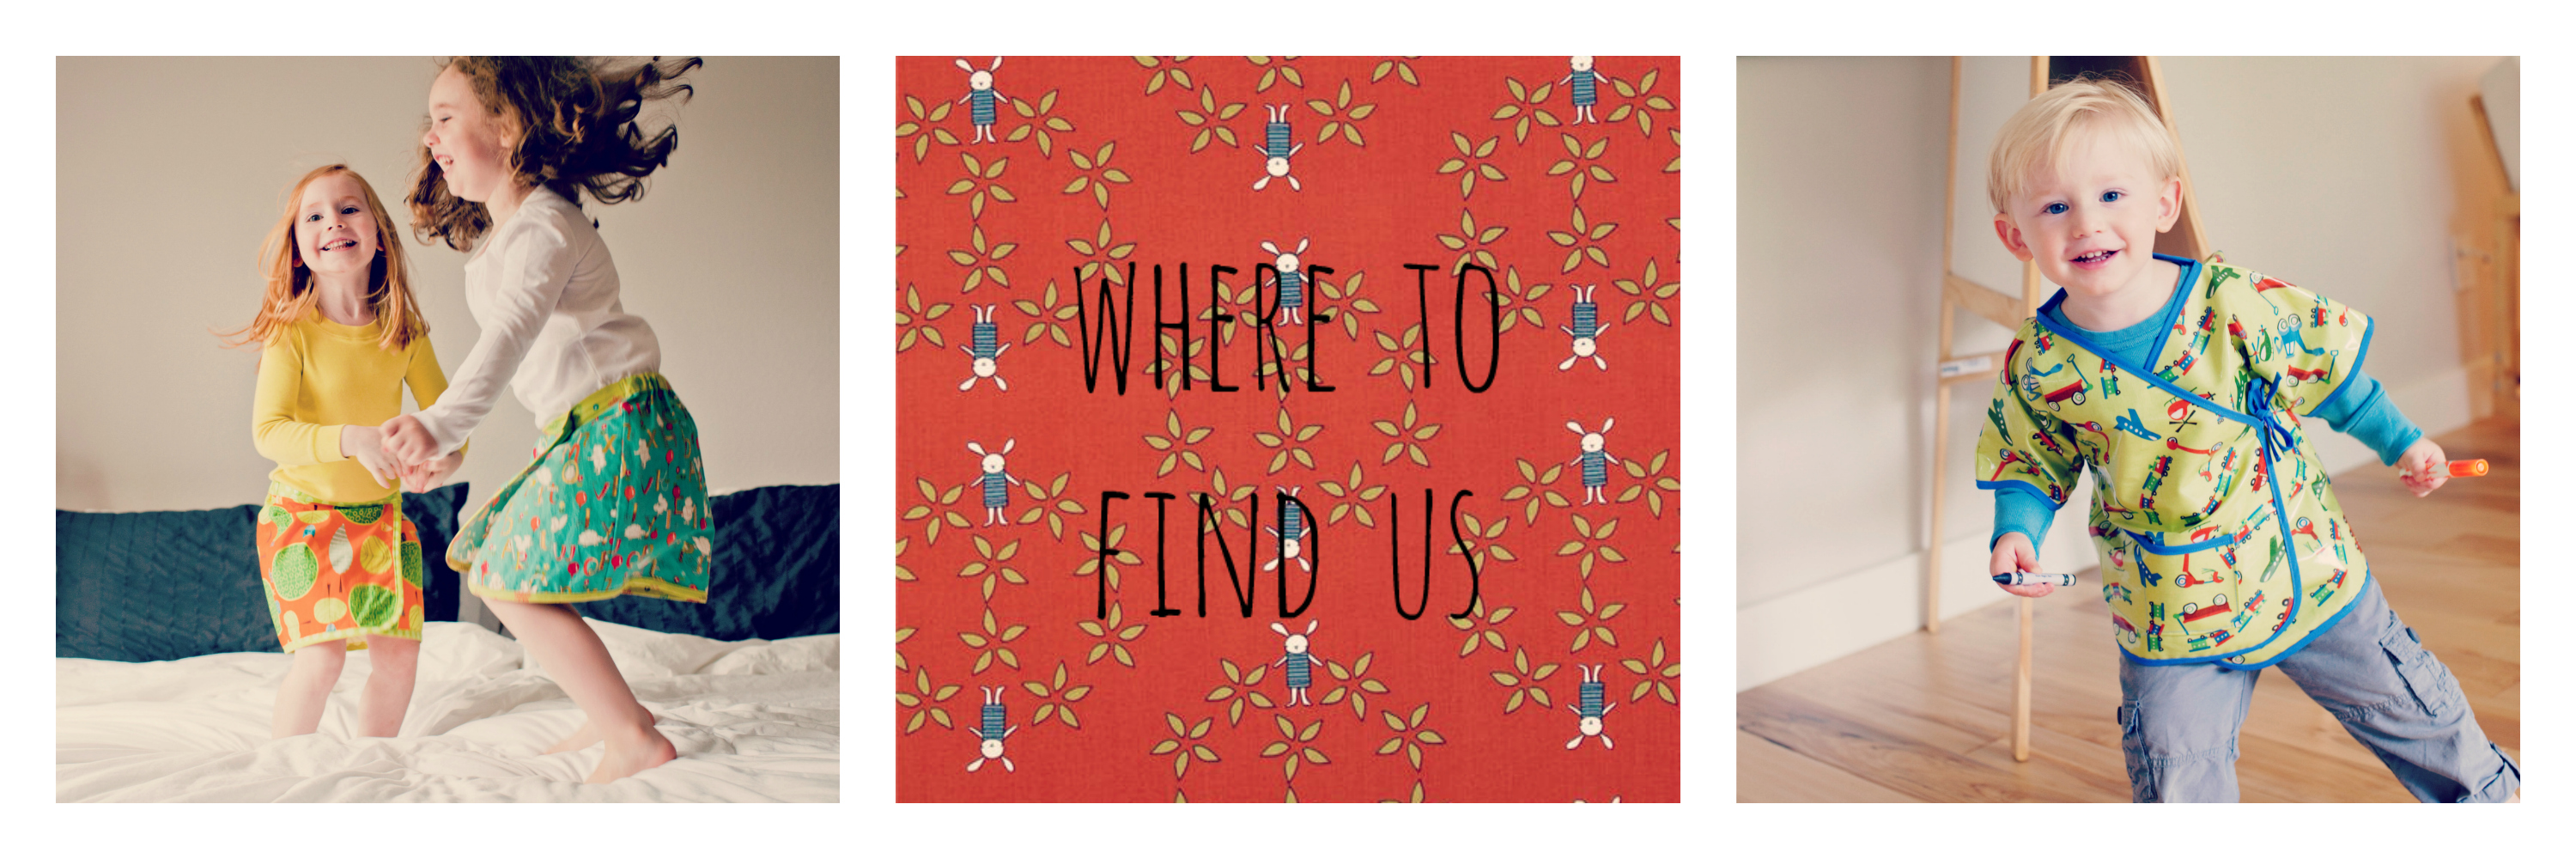 where to find us collage